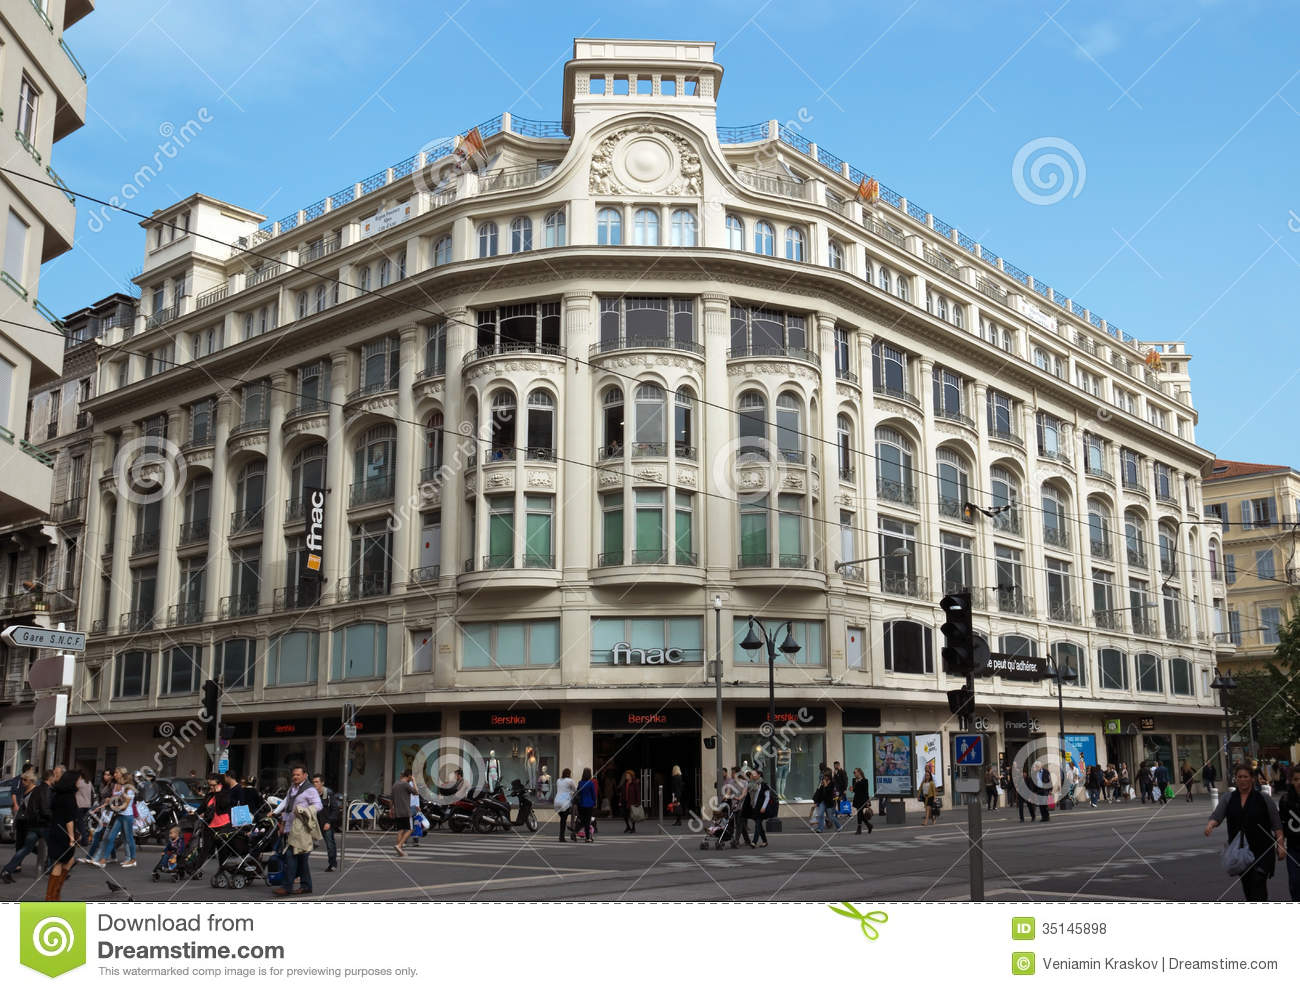 Nice - Streets And Architecture Of Buildings Editorial Stock Photo ...